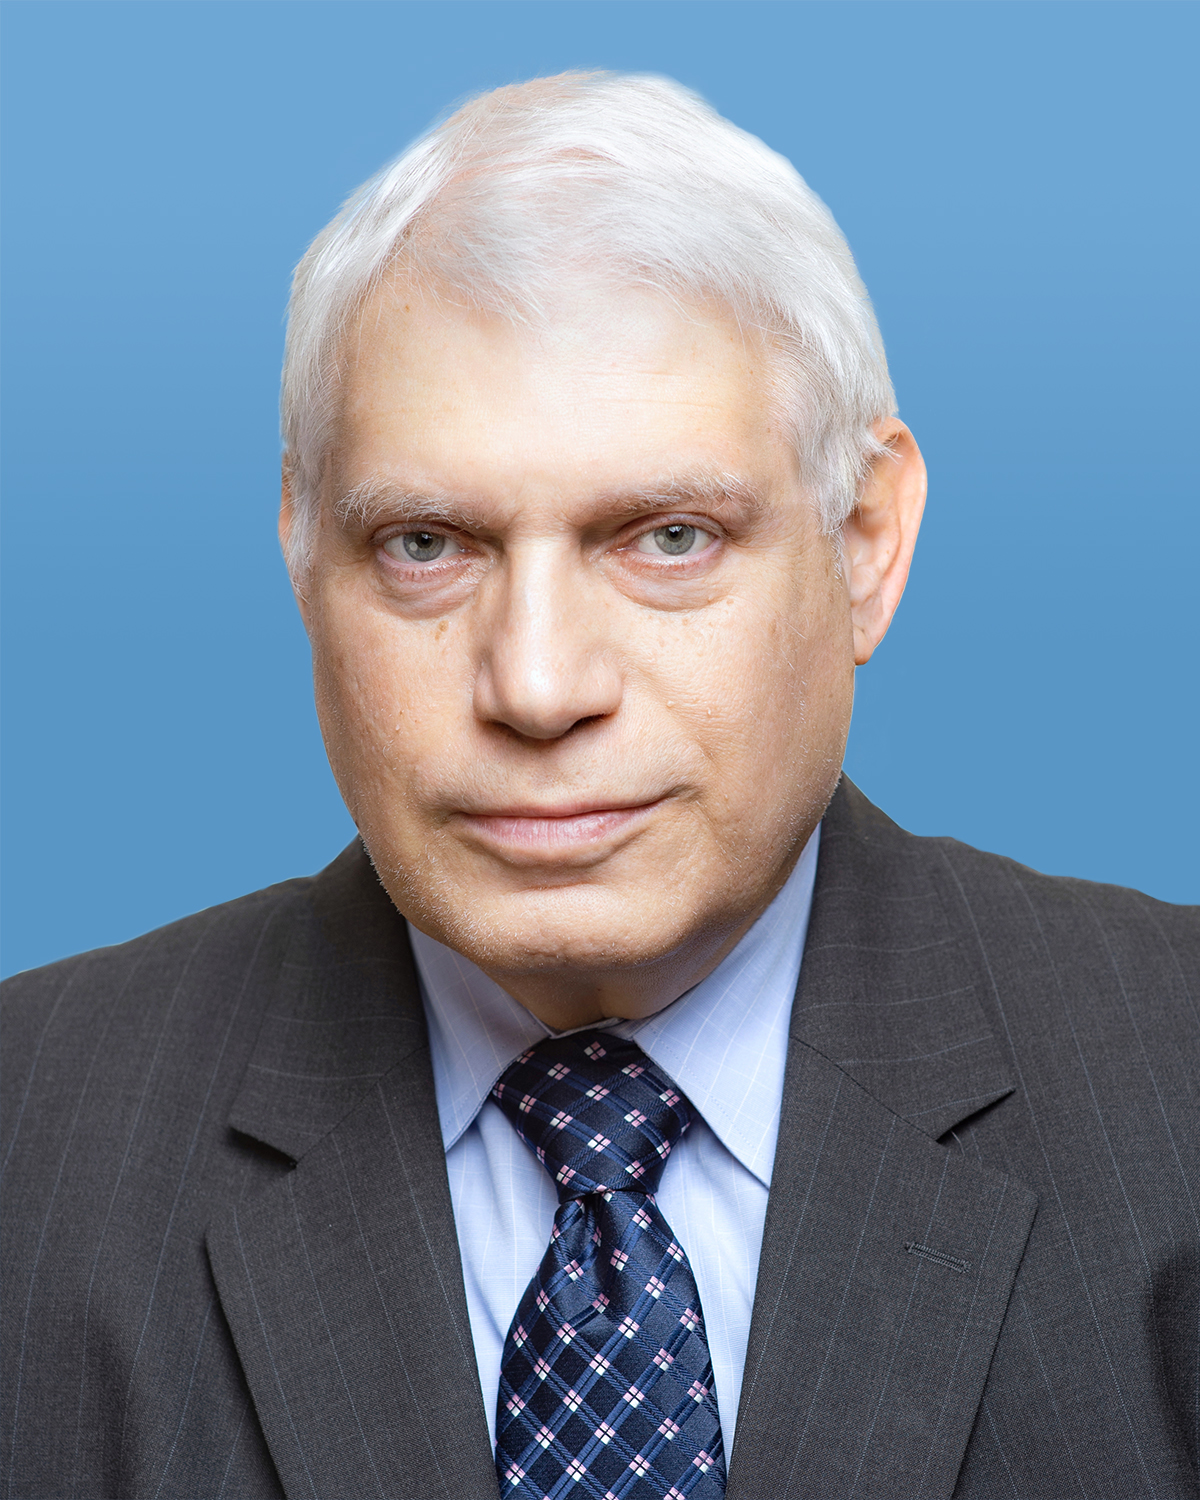 stephen blank american foreign policy council